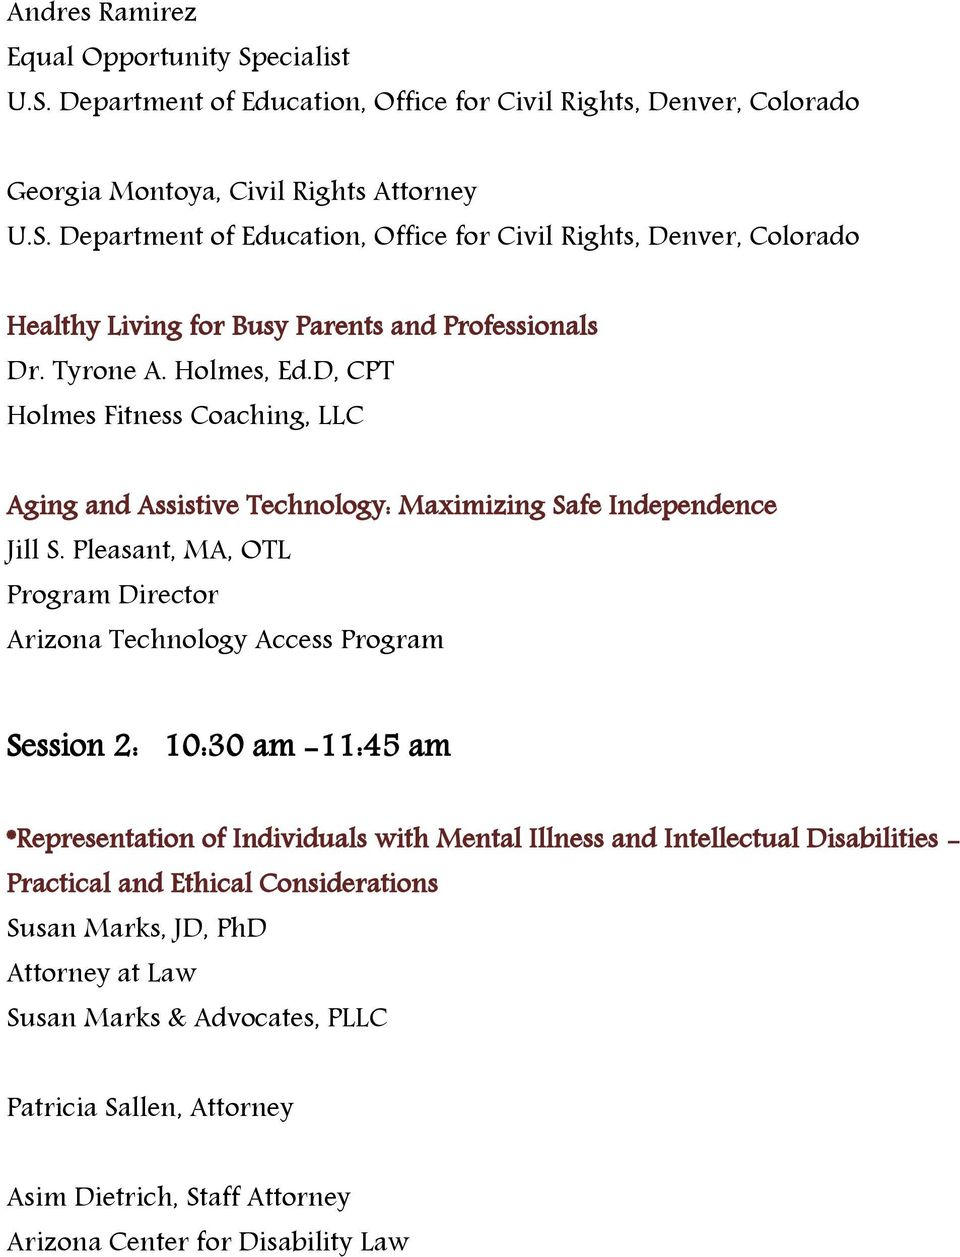 Pleasant, MA, OTL Program Director Arizona Technology Access Program Session 2: 10:30 am -11:45 am *Representation of Individuals with Mental Illness and Intellectual Disabilities -